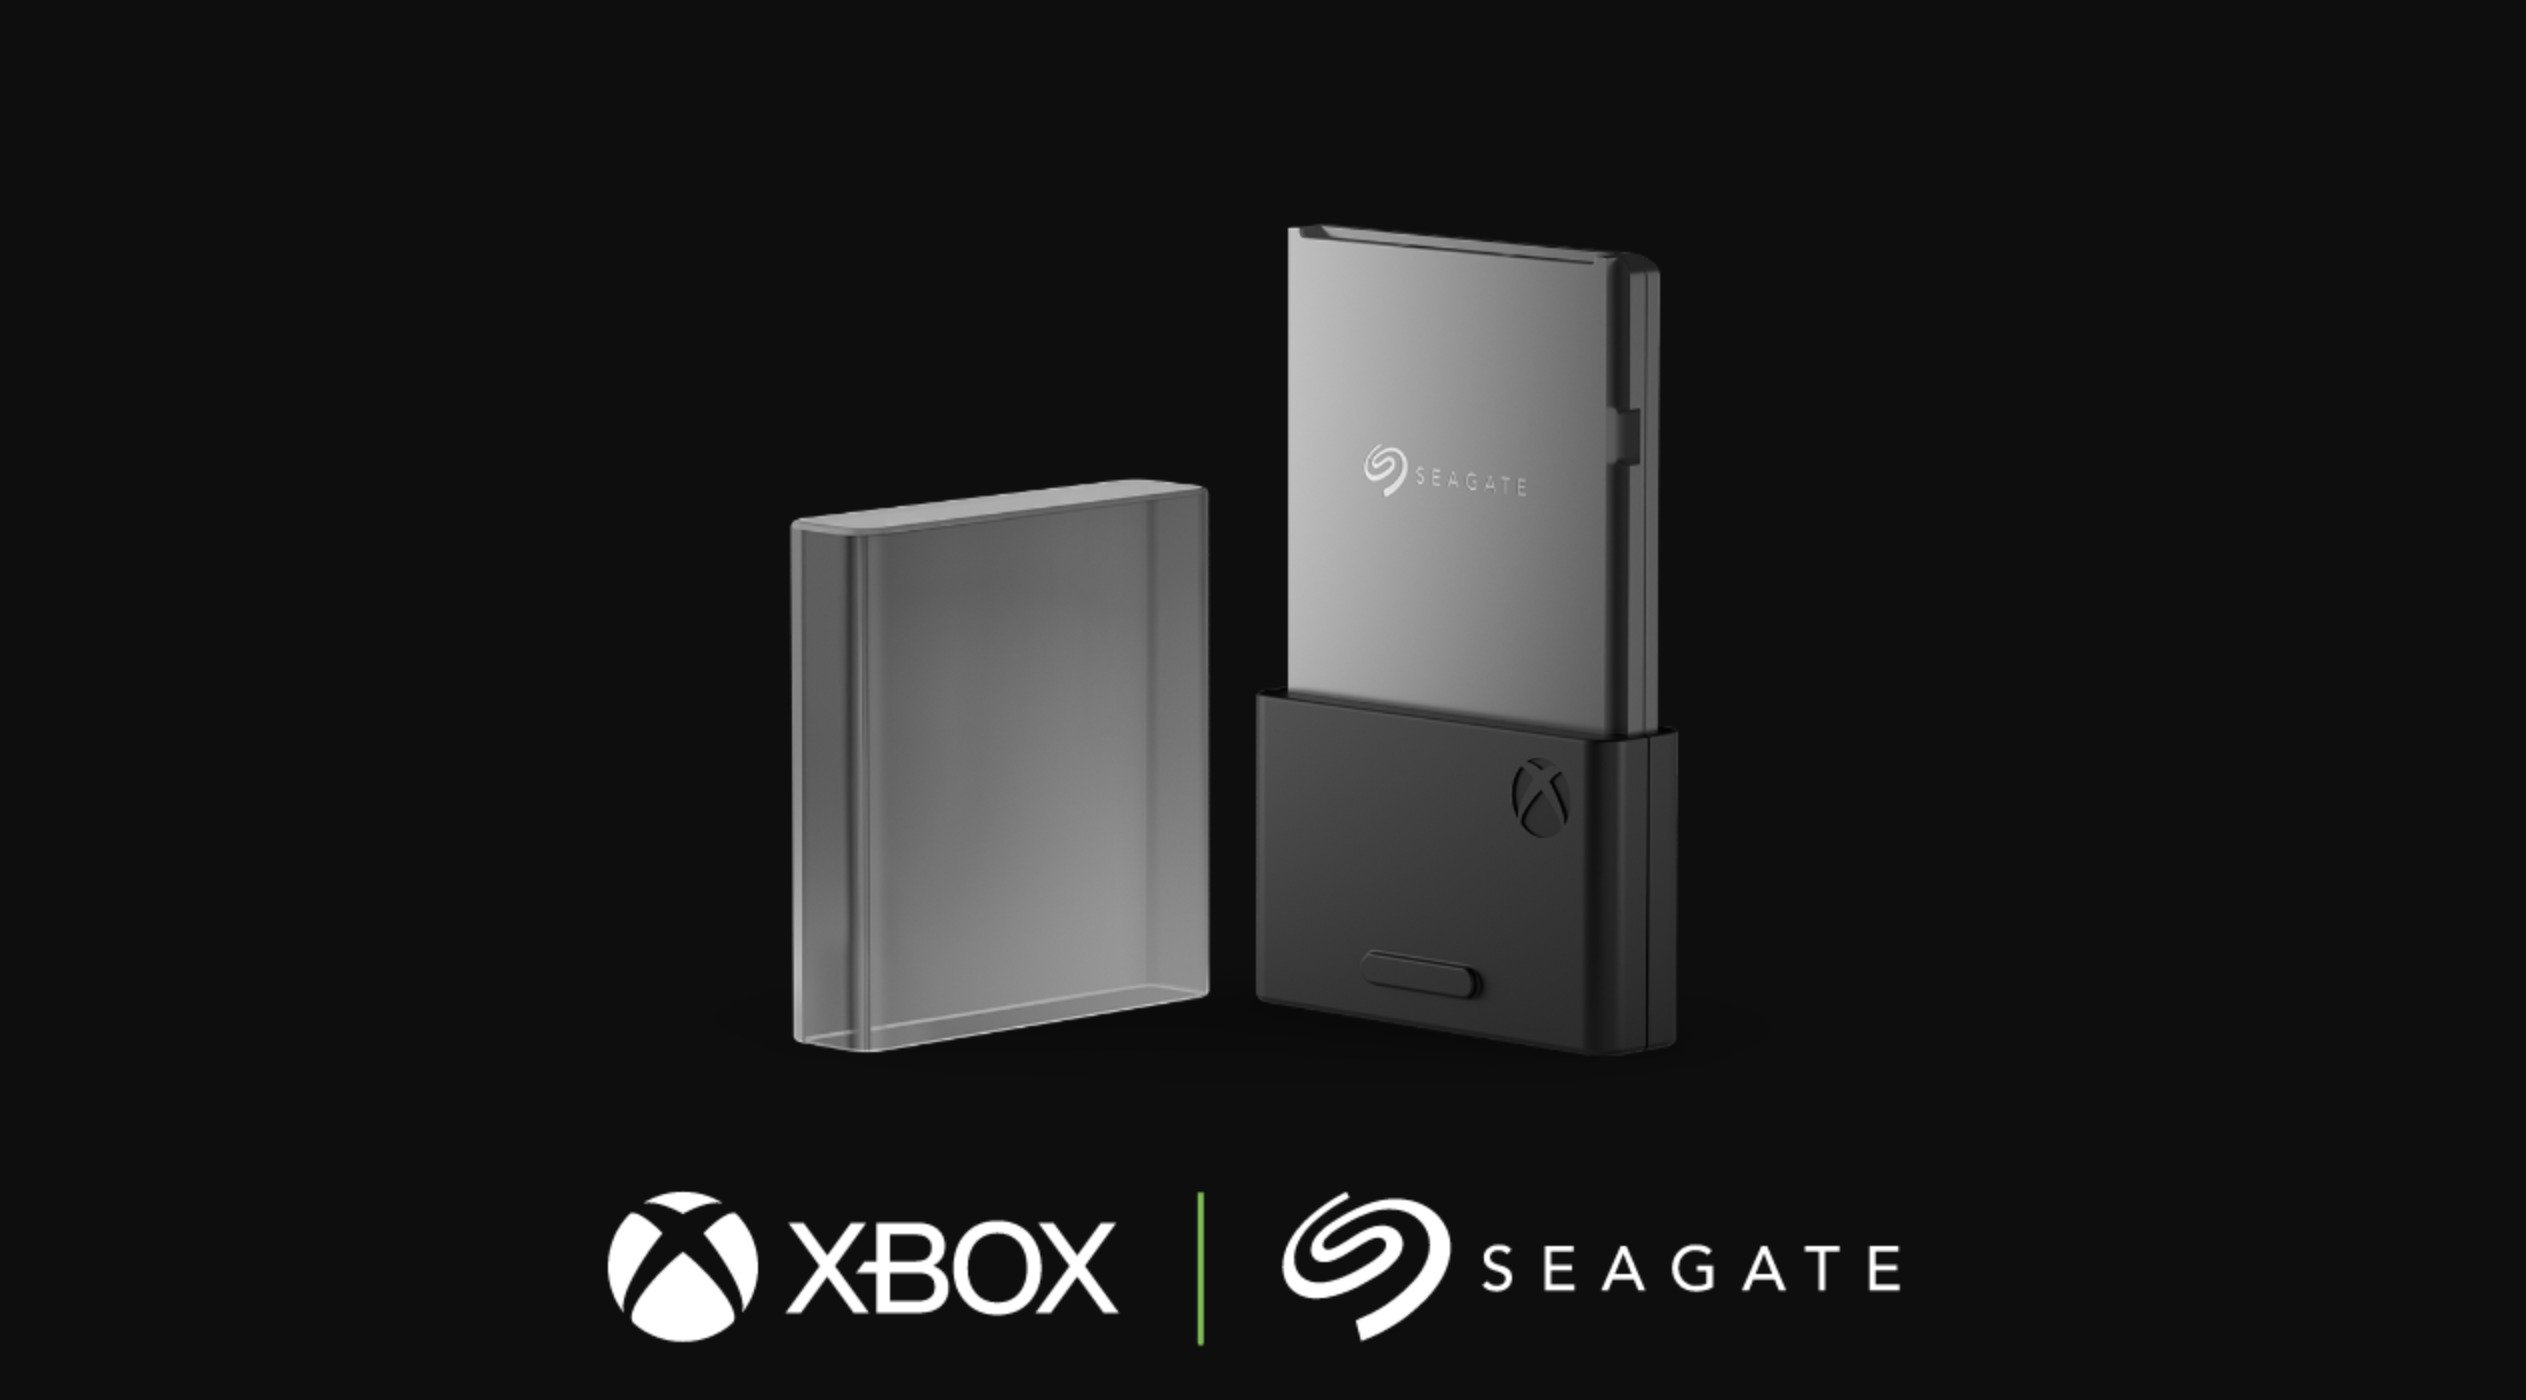 Extensions Seagate Xbox Series X / S